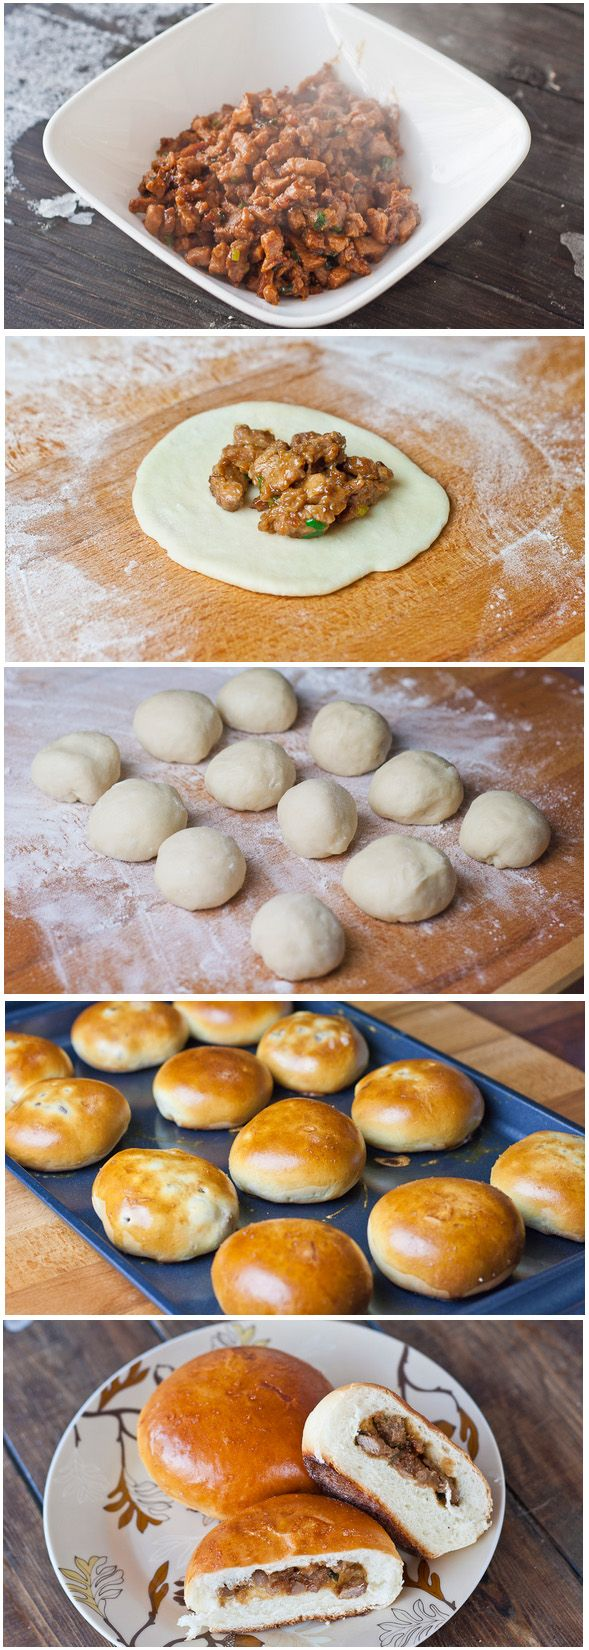 Chinese style meat buns homemade food recipes chinese food chinese style meat buns homemade food recipes forumfinder Image collections